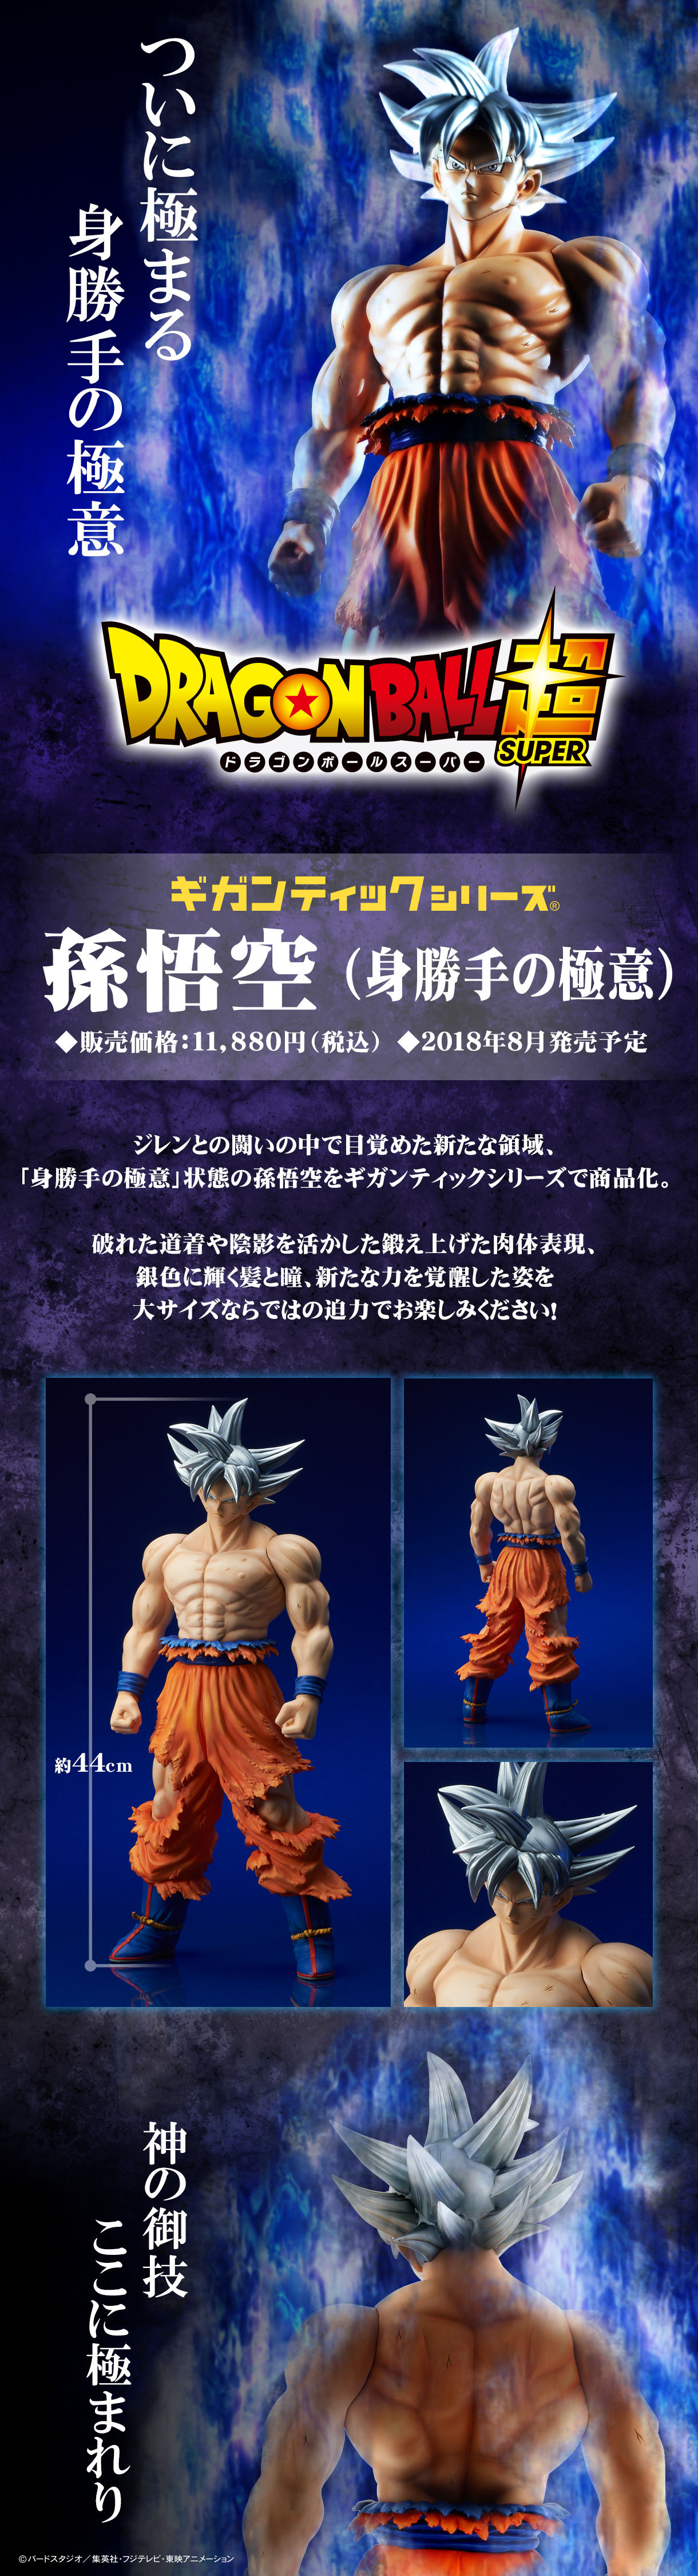 Dragon Ball Super Gigantic series Gokû Ultra Instinct Migatte no Gokui